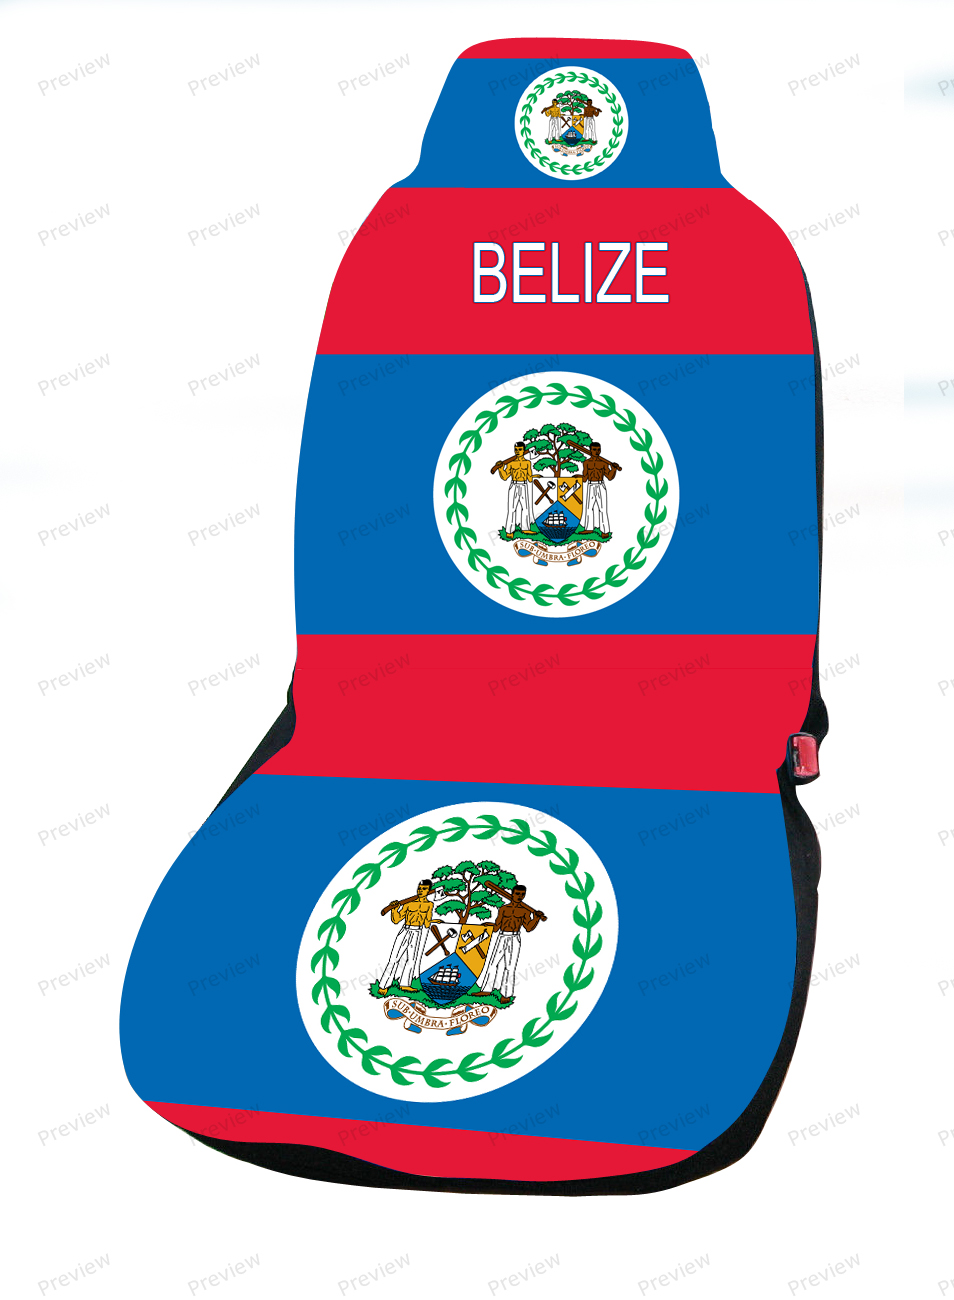 Belize image for car cover seat